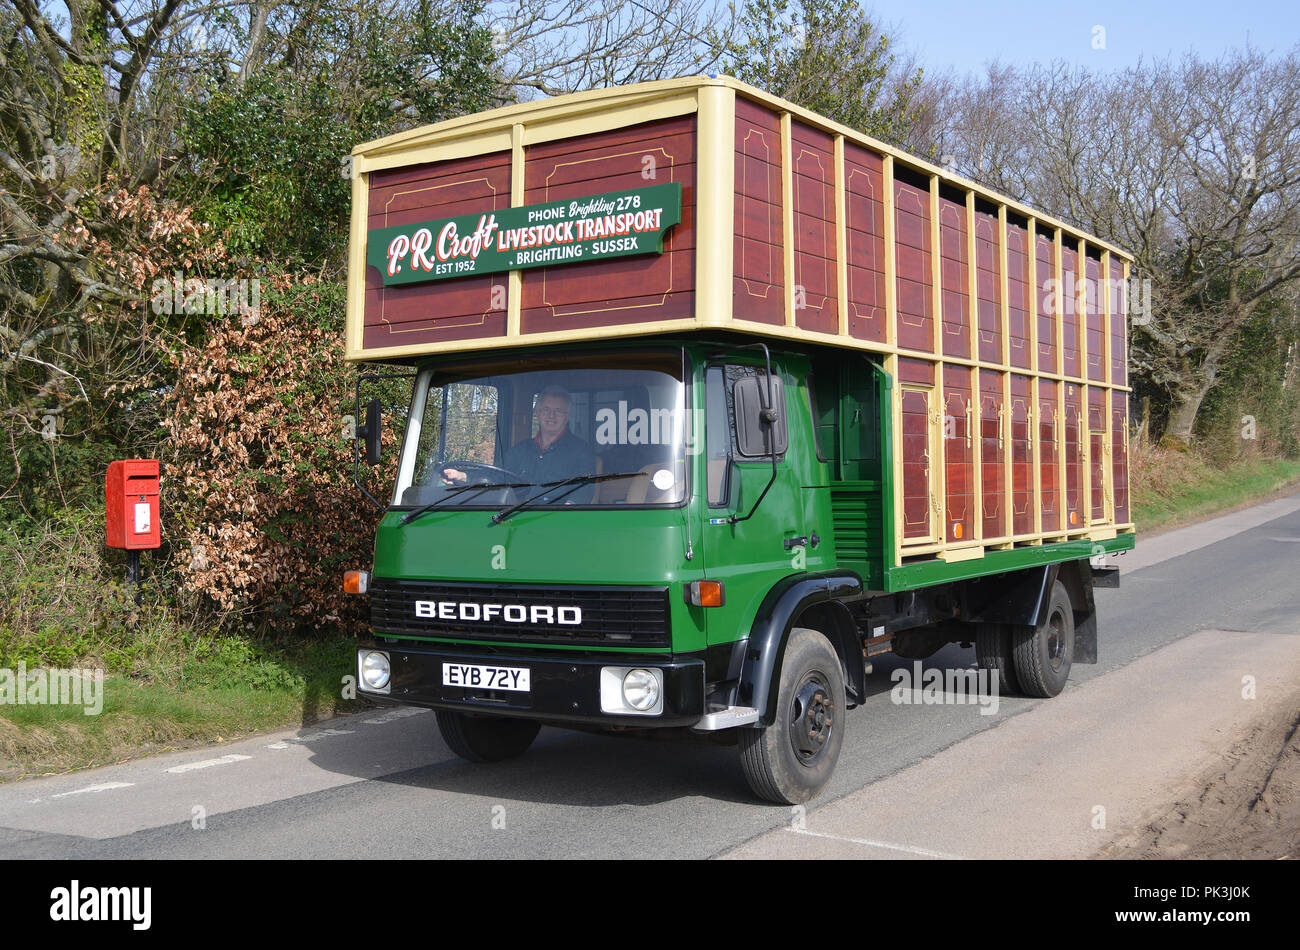 Bedford TL Horsebox - Stock Image